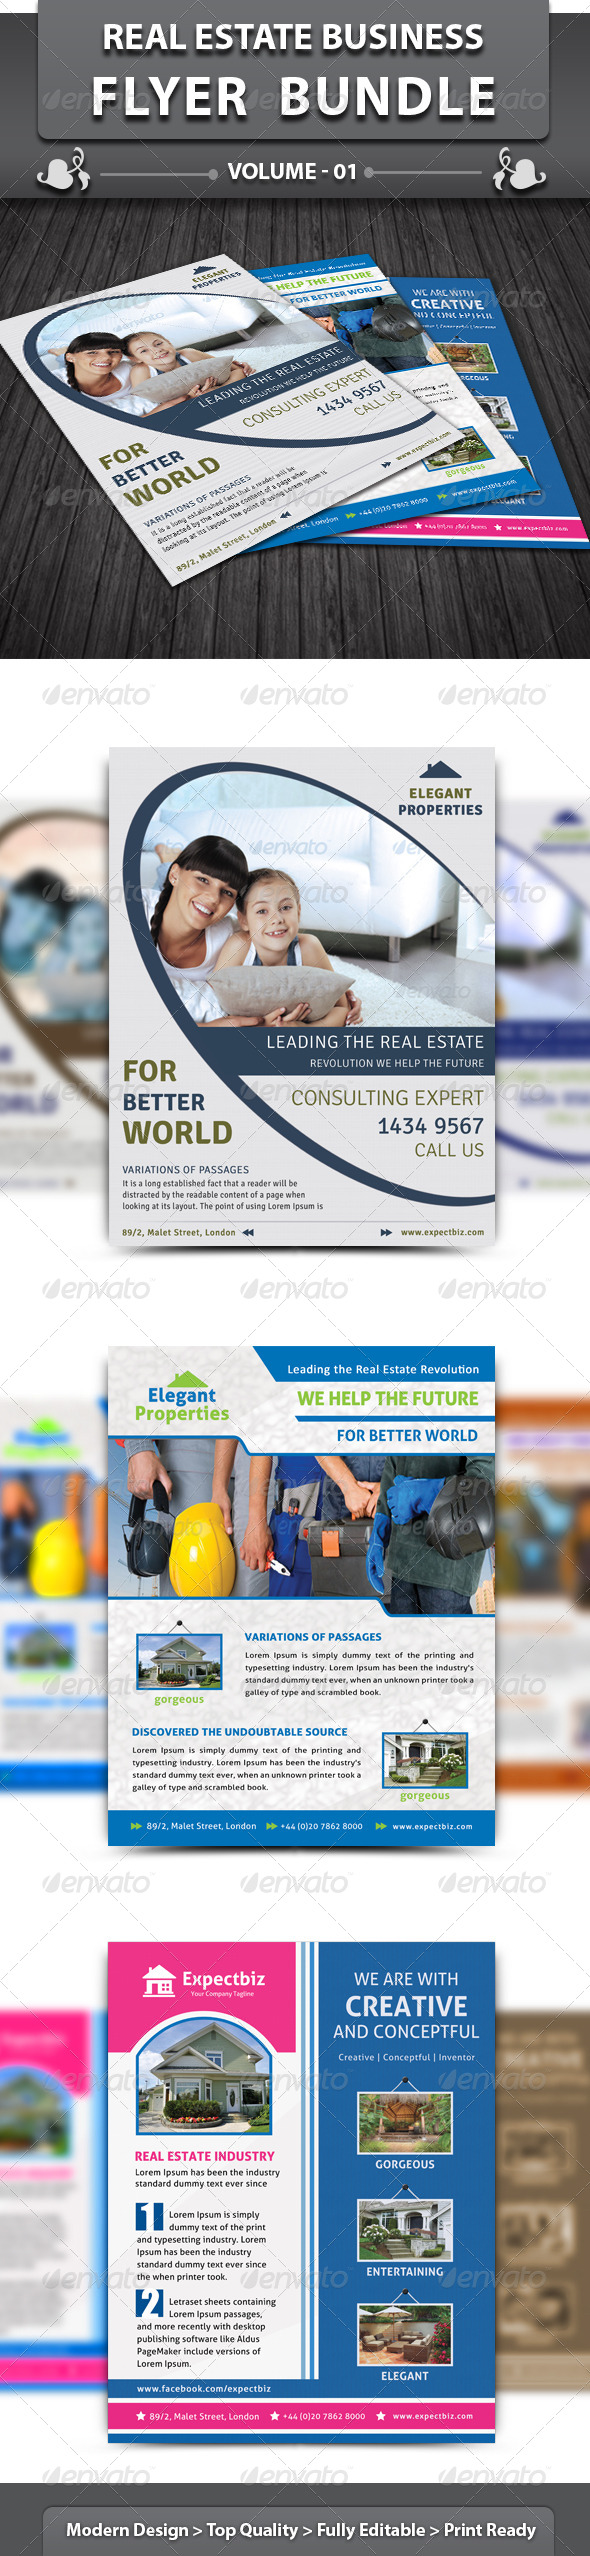 Real Estate Business Flyer | Bundle 1